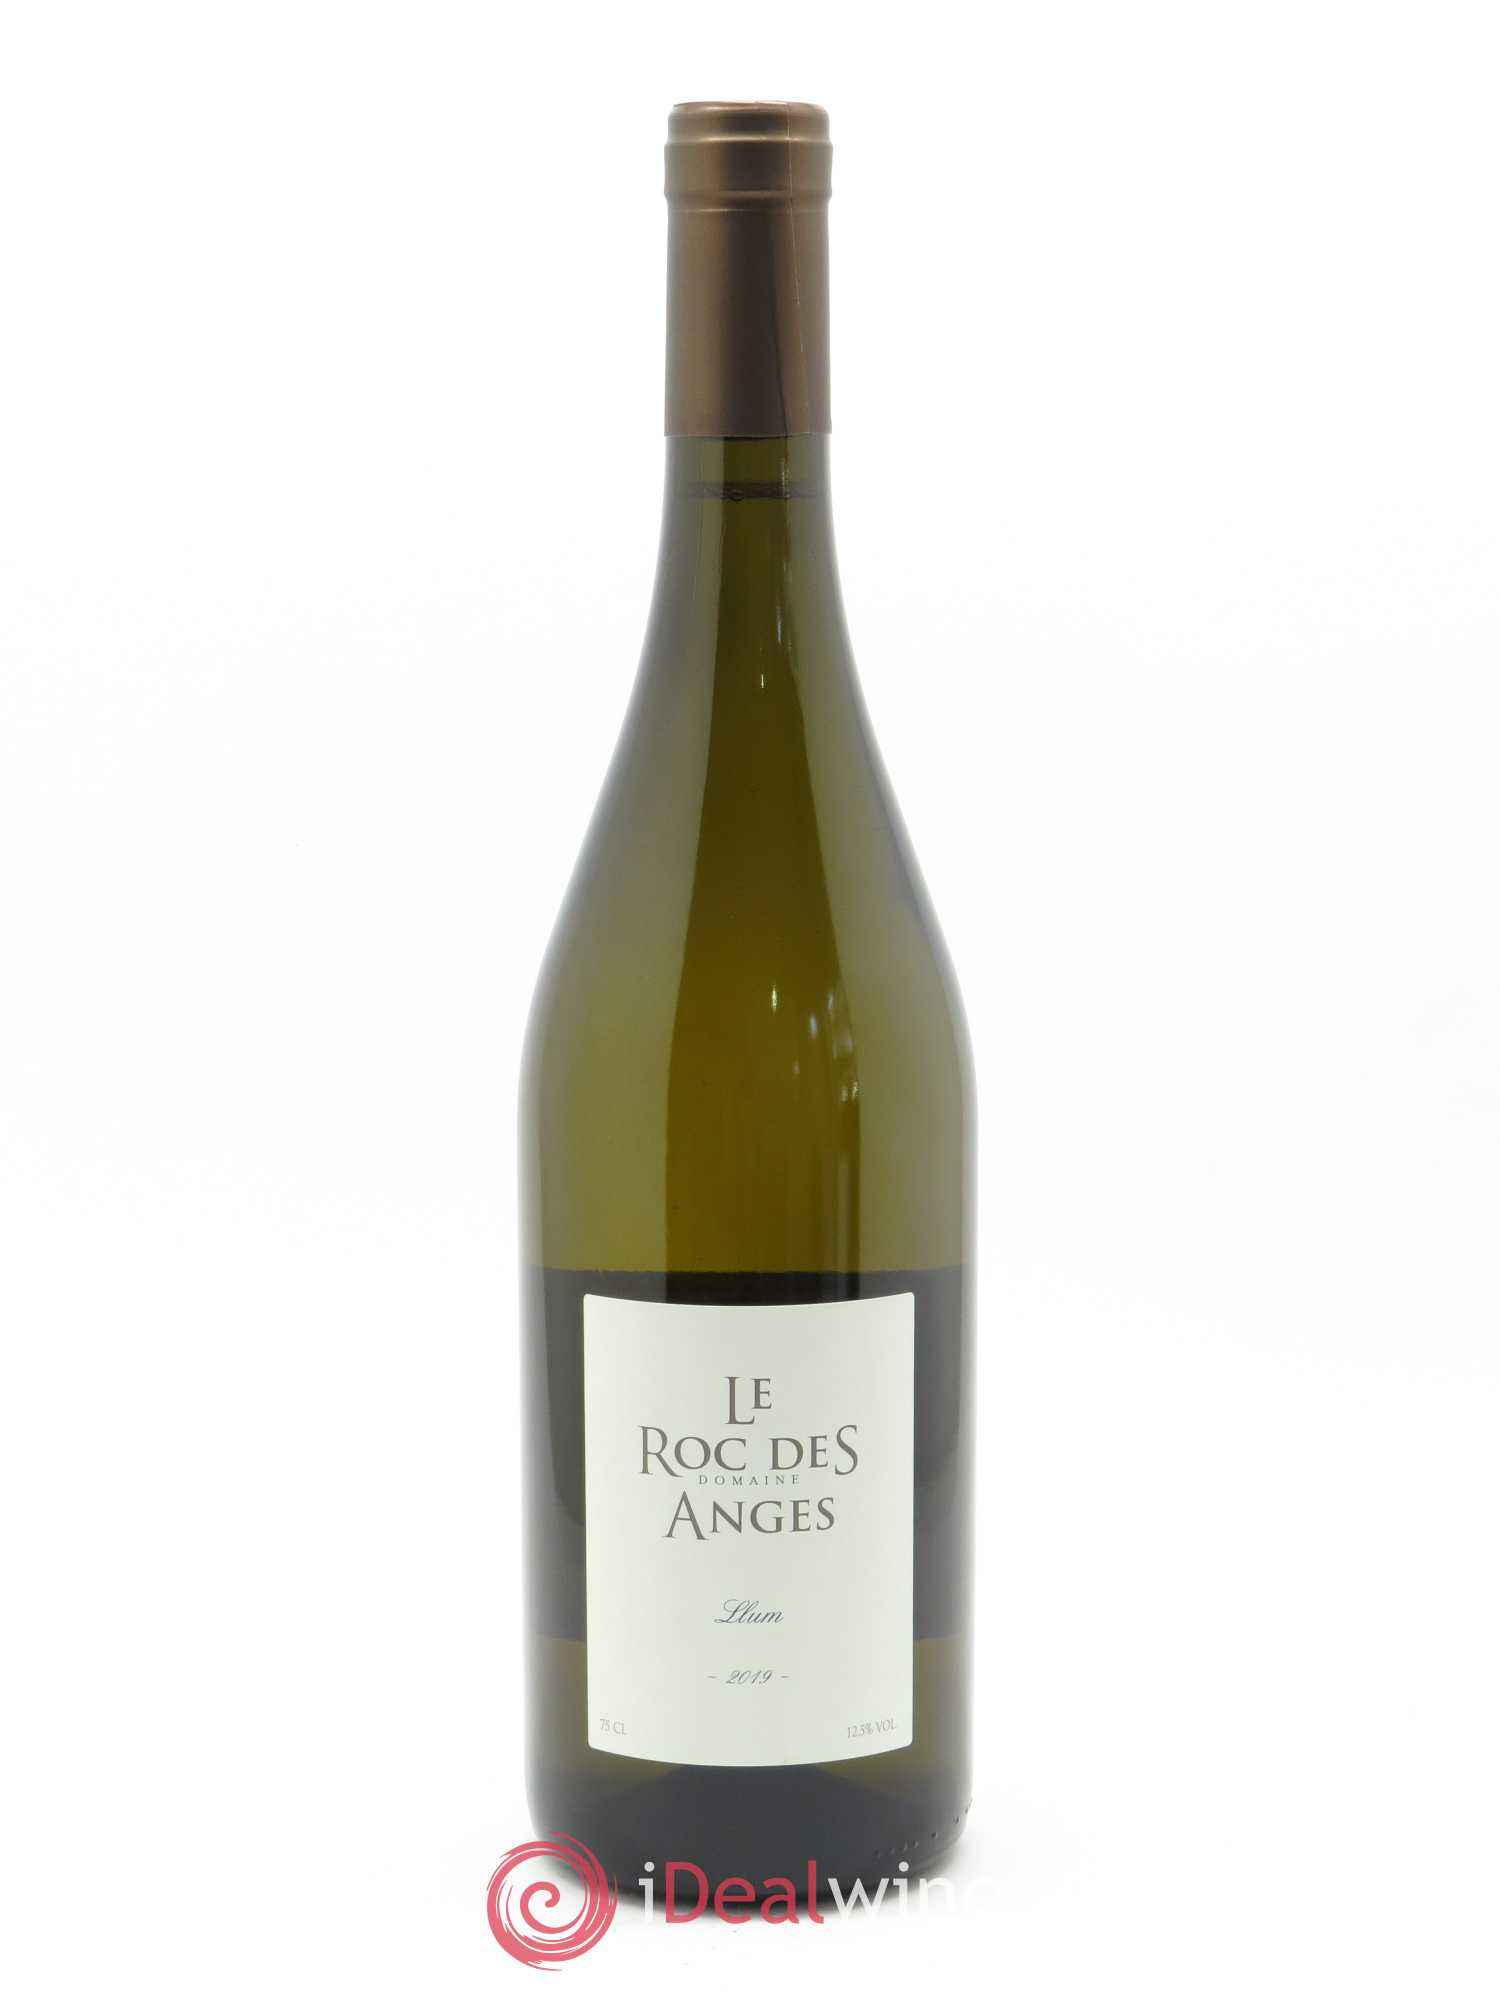 IGP Côtes Catalanes Roc des Anges Llum Marjorie et Stéphane Gallet  2019 - Lot of 1 Bottle